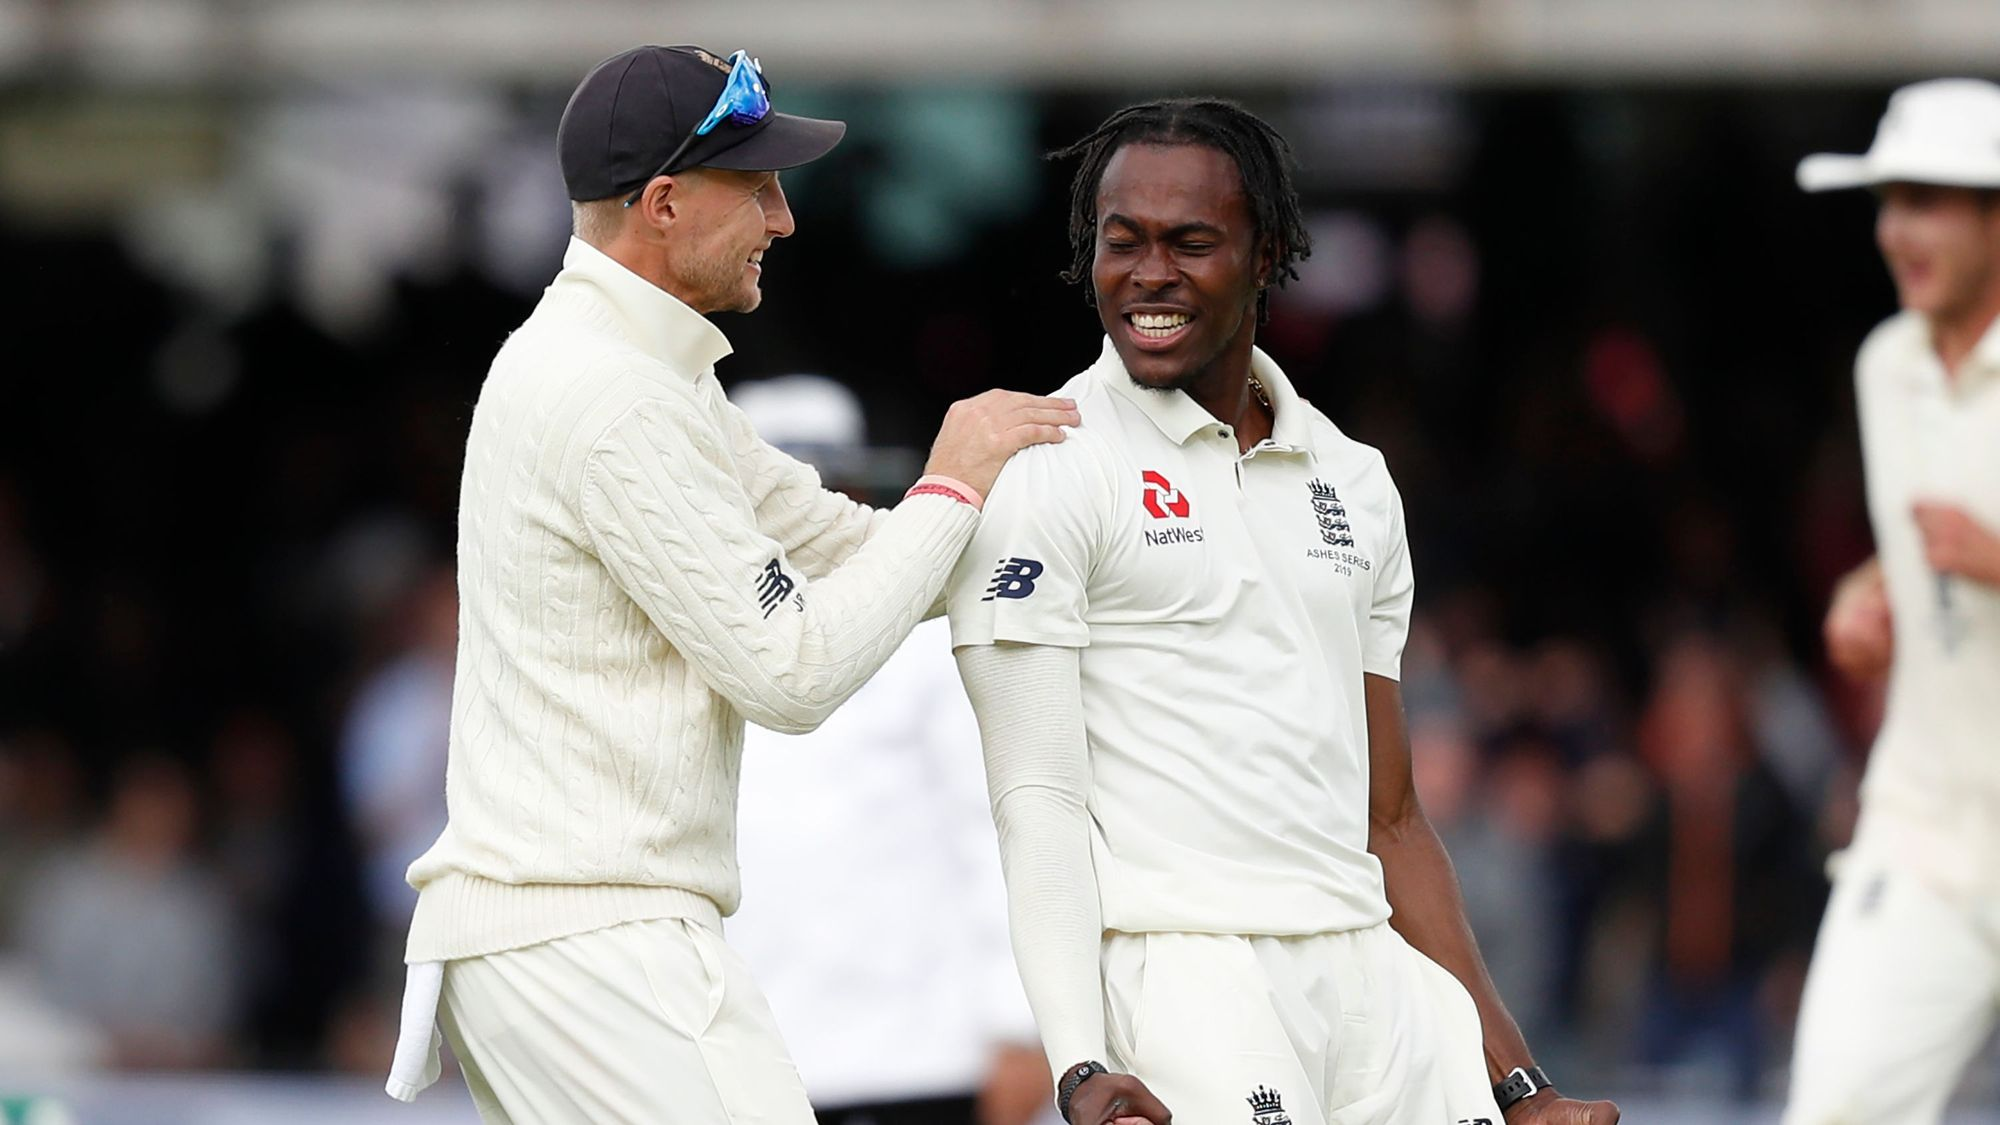 England look to build on positives from Lord's